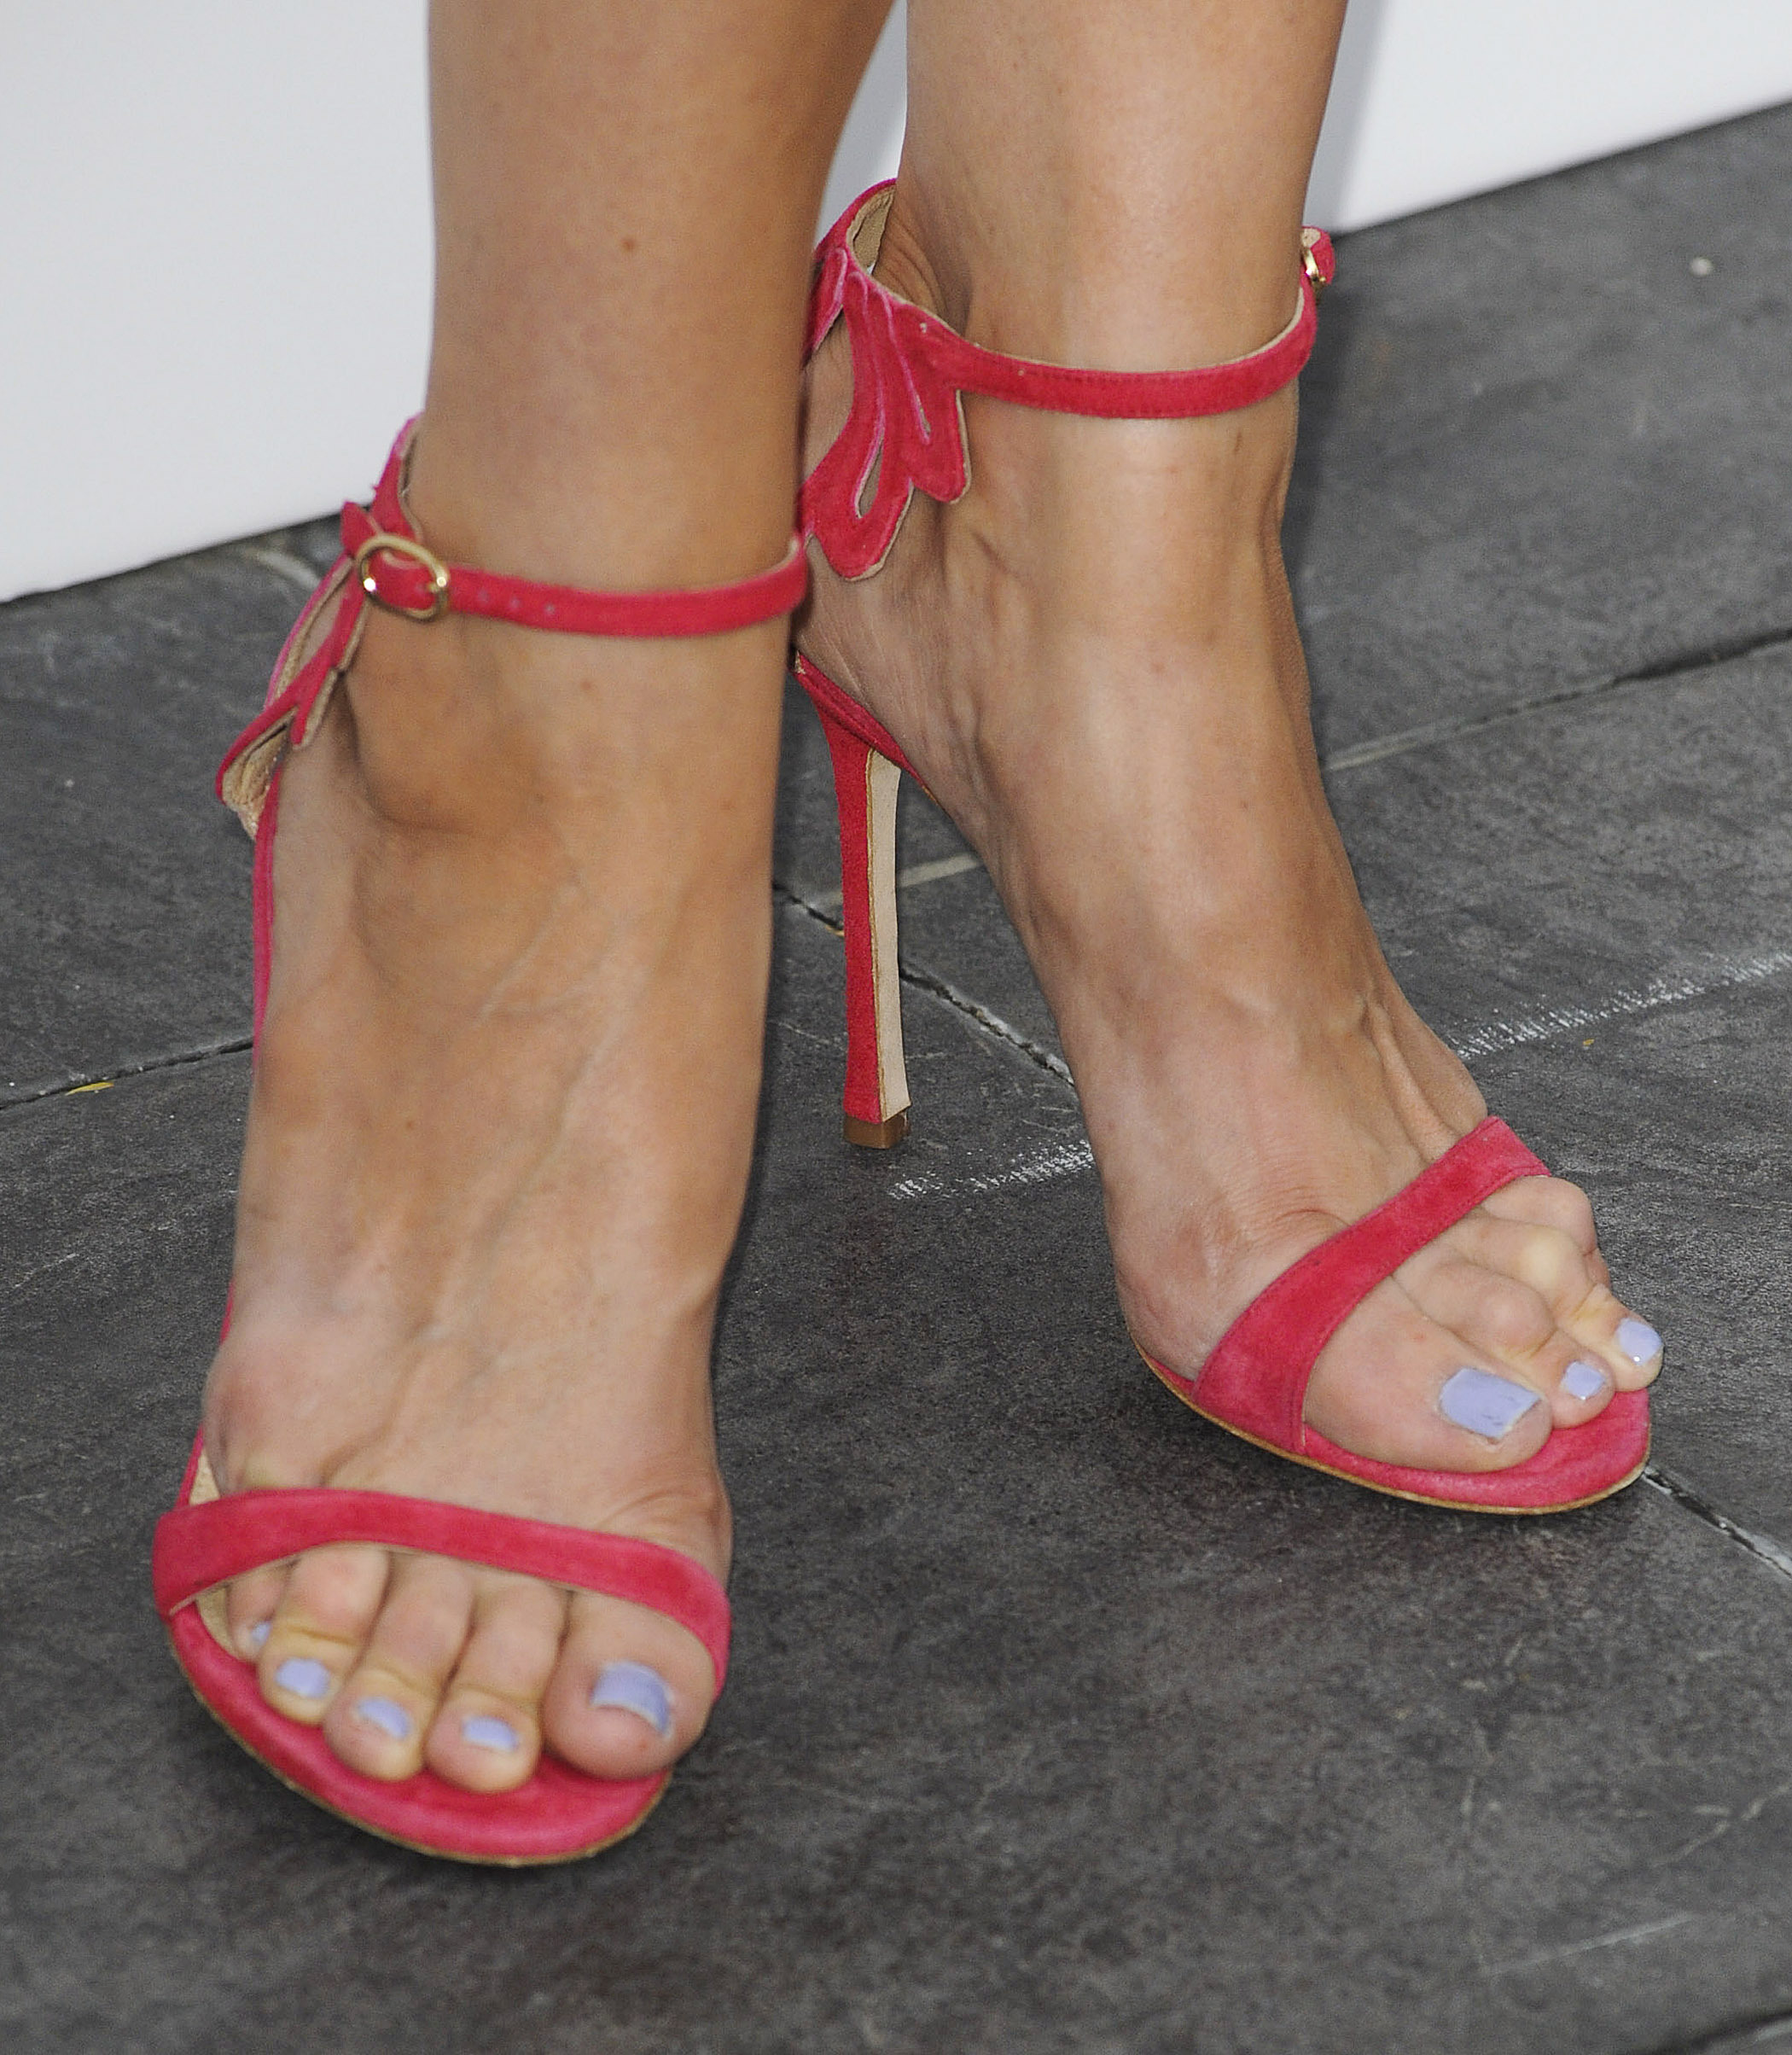 Lucy Punch's Feet